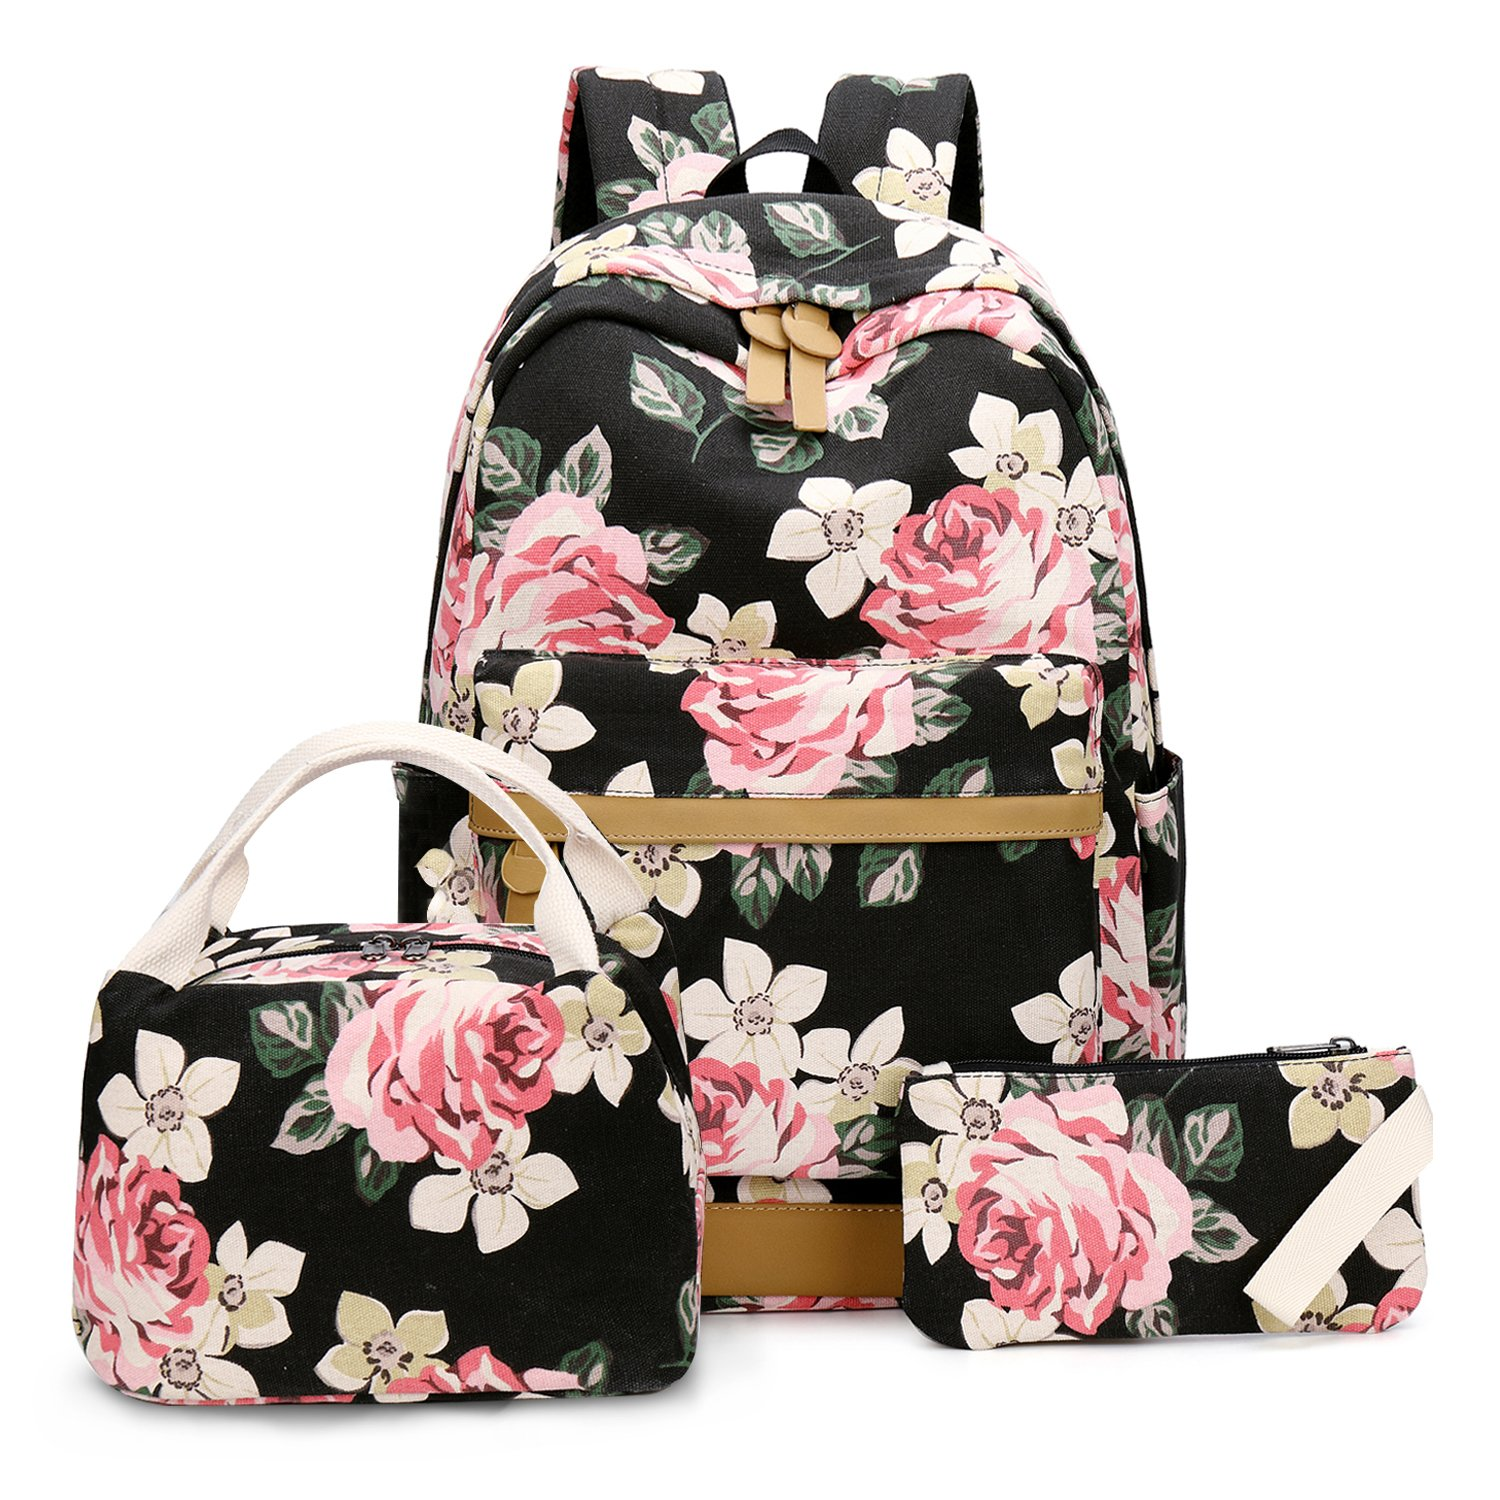 BLUBOON School Backpack for Girls Canvas Laptop Backpack Teens Bookbag Set Lunch Bag Purse (Flower Black - 3pcs) by BLUBOON